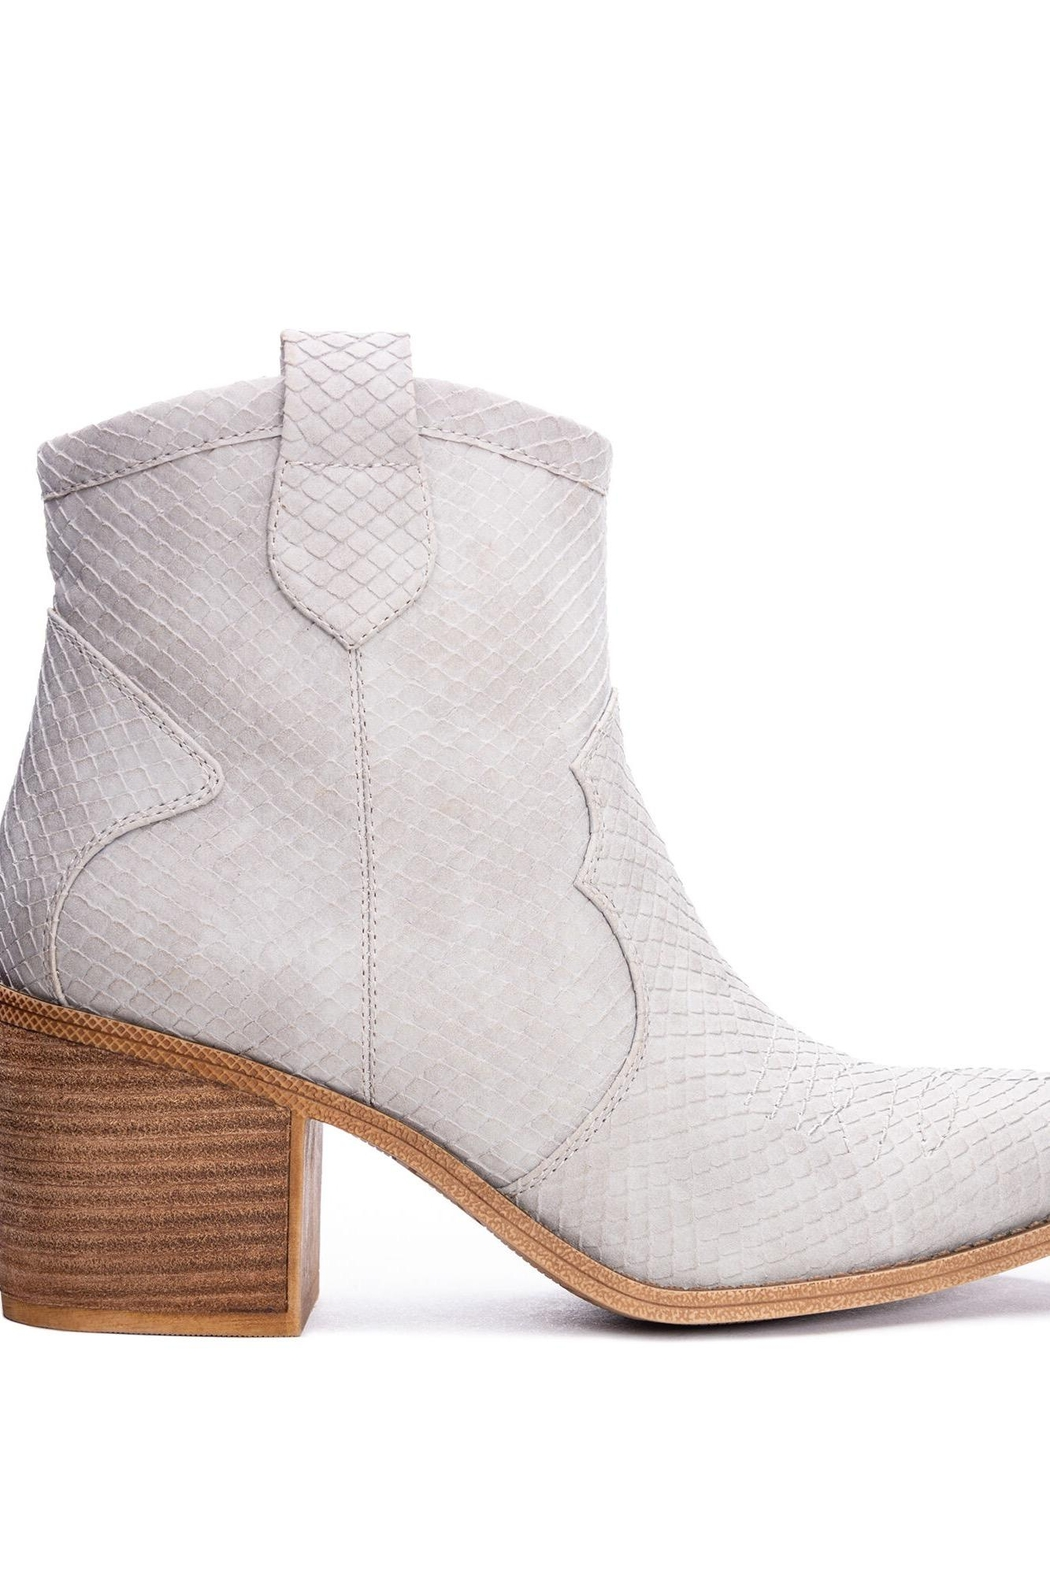 Dirty Laundry Unite Snakeskin Booties - Side Cropped Image